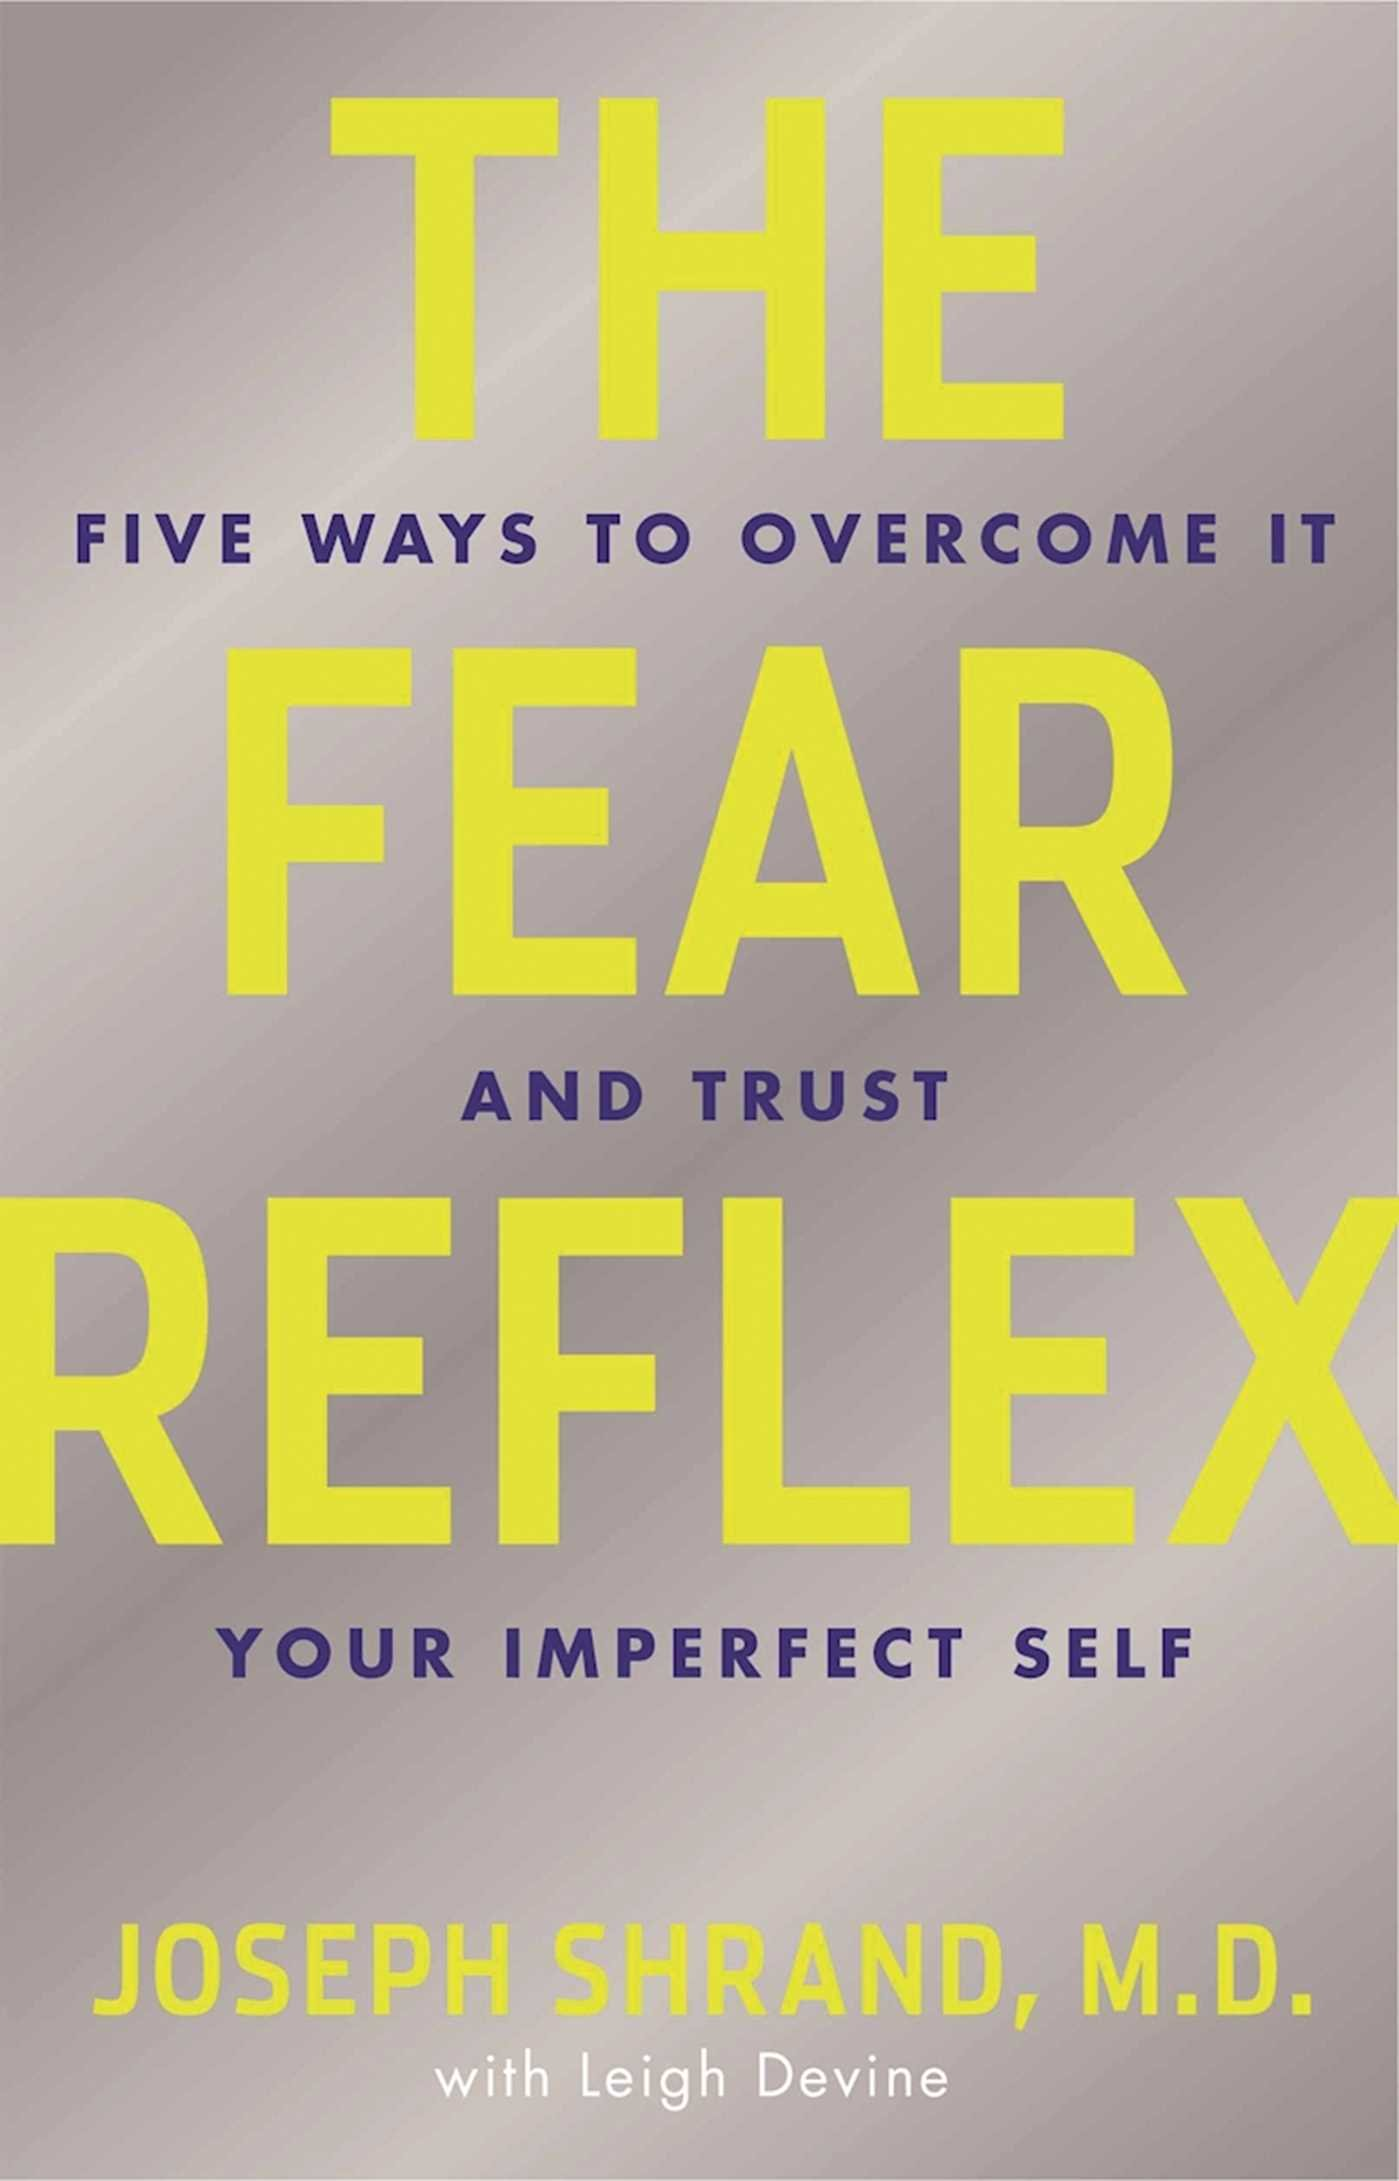 Amazon.com: The Fear Reflex: 5 Ways to Overcome It and Trust Your Imperfect  Self (9781616495541): Joseph Shrand M.D., Leigh Devine: Books